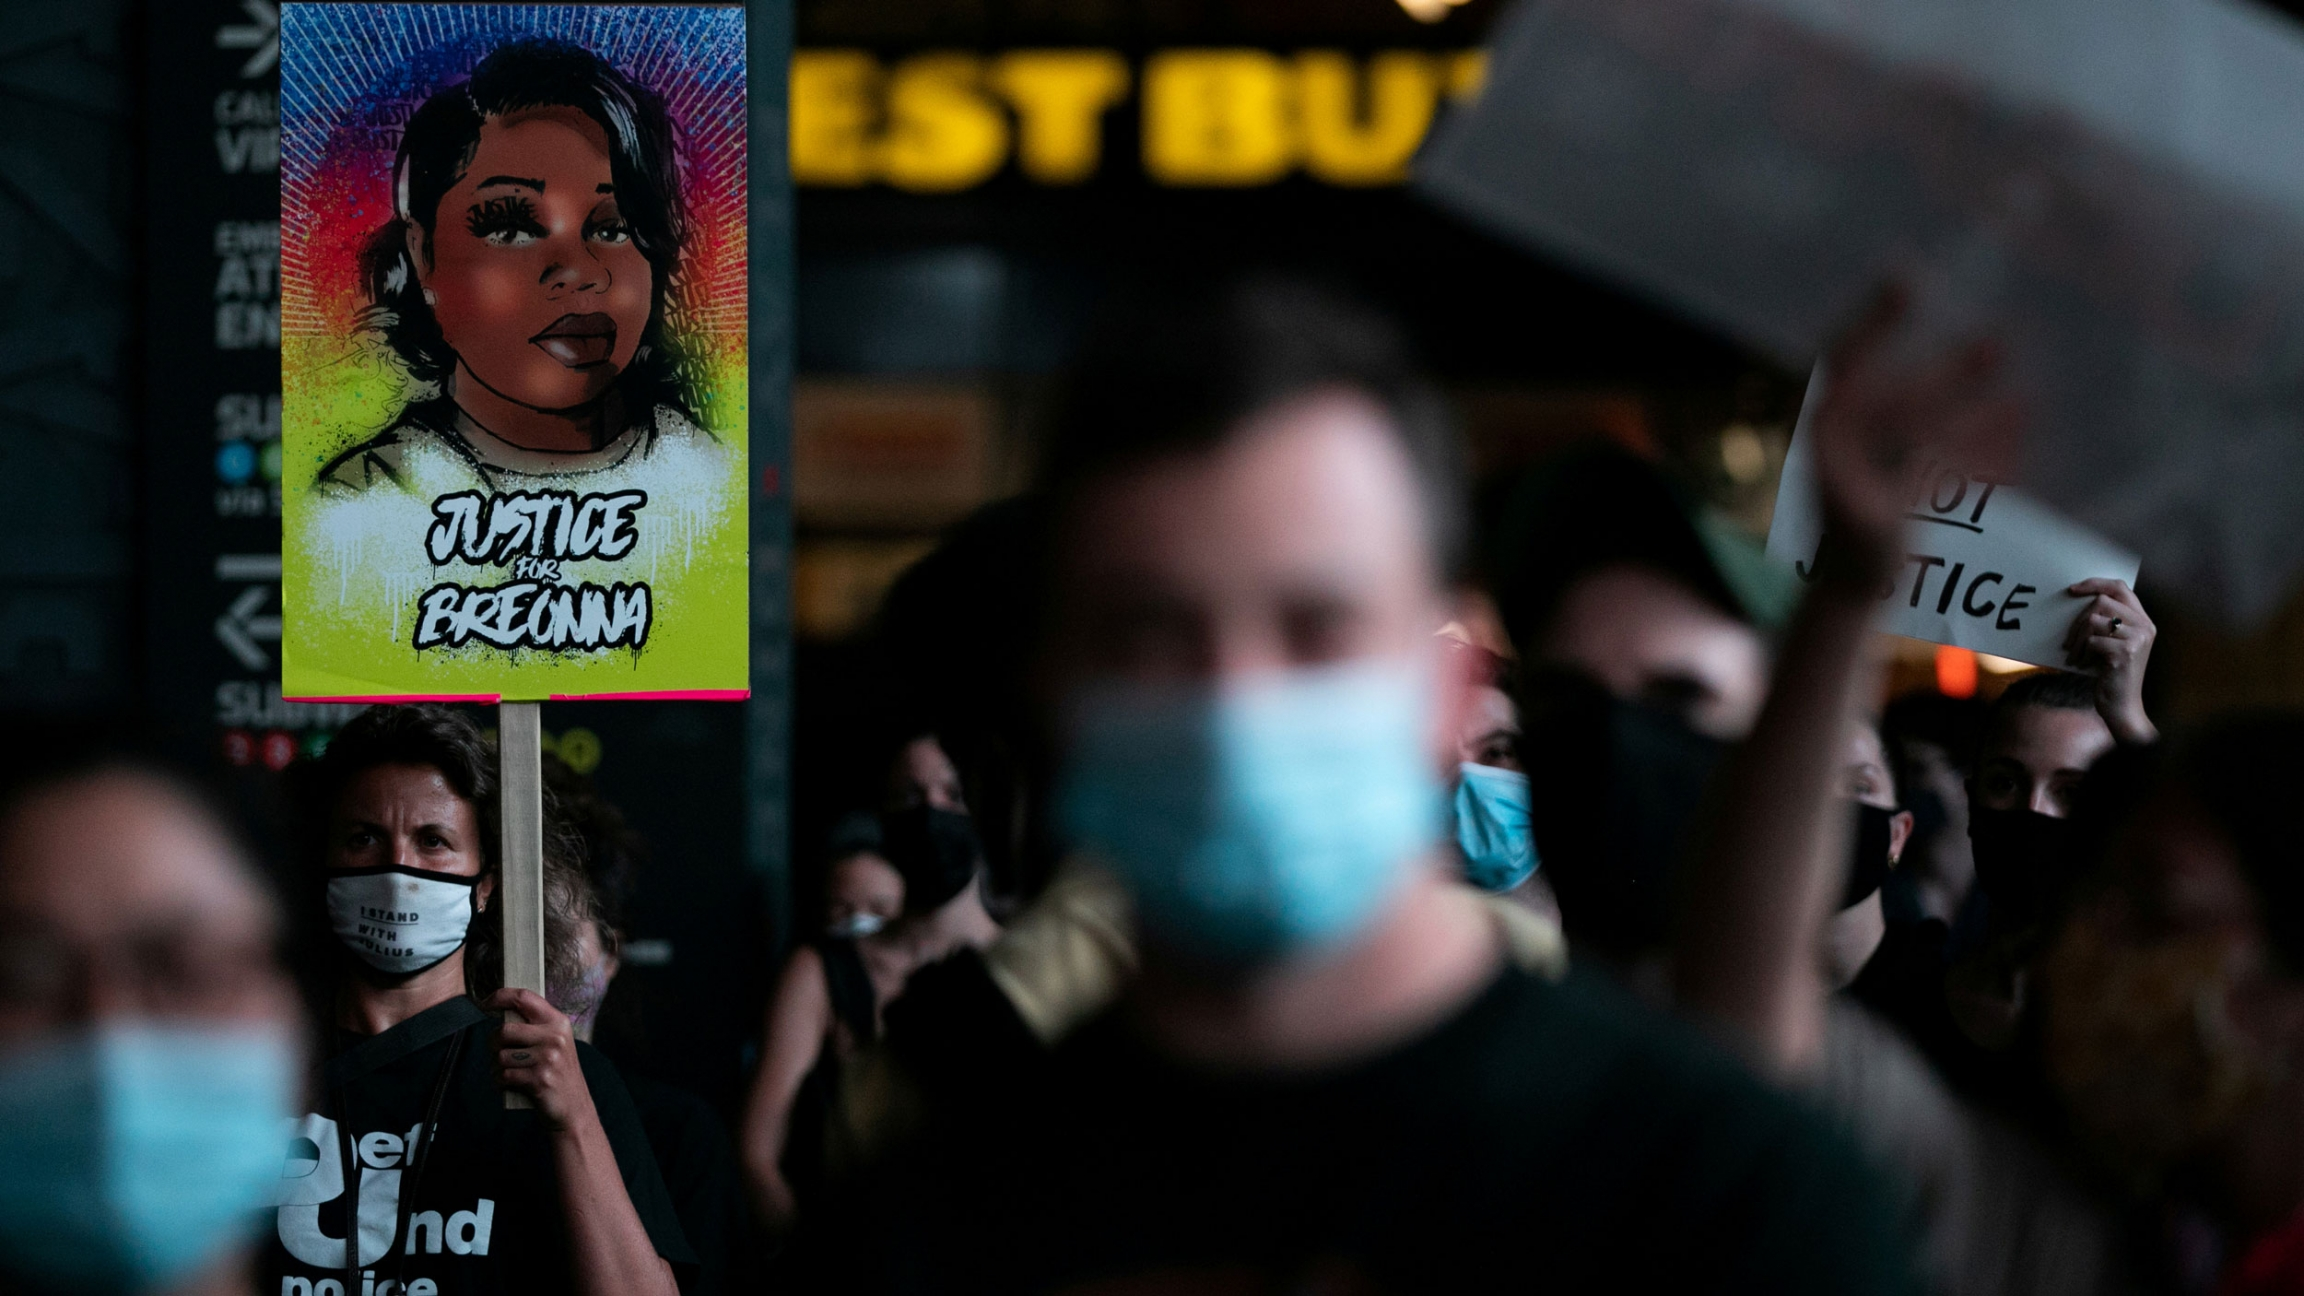 A large crowd of people are shown in the dark of night with a woman holding a placard with an illustration of Breonna Taylor on it.